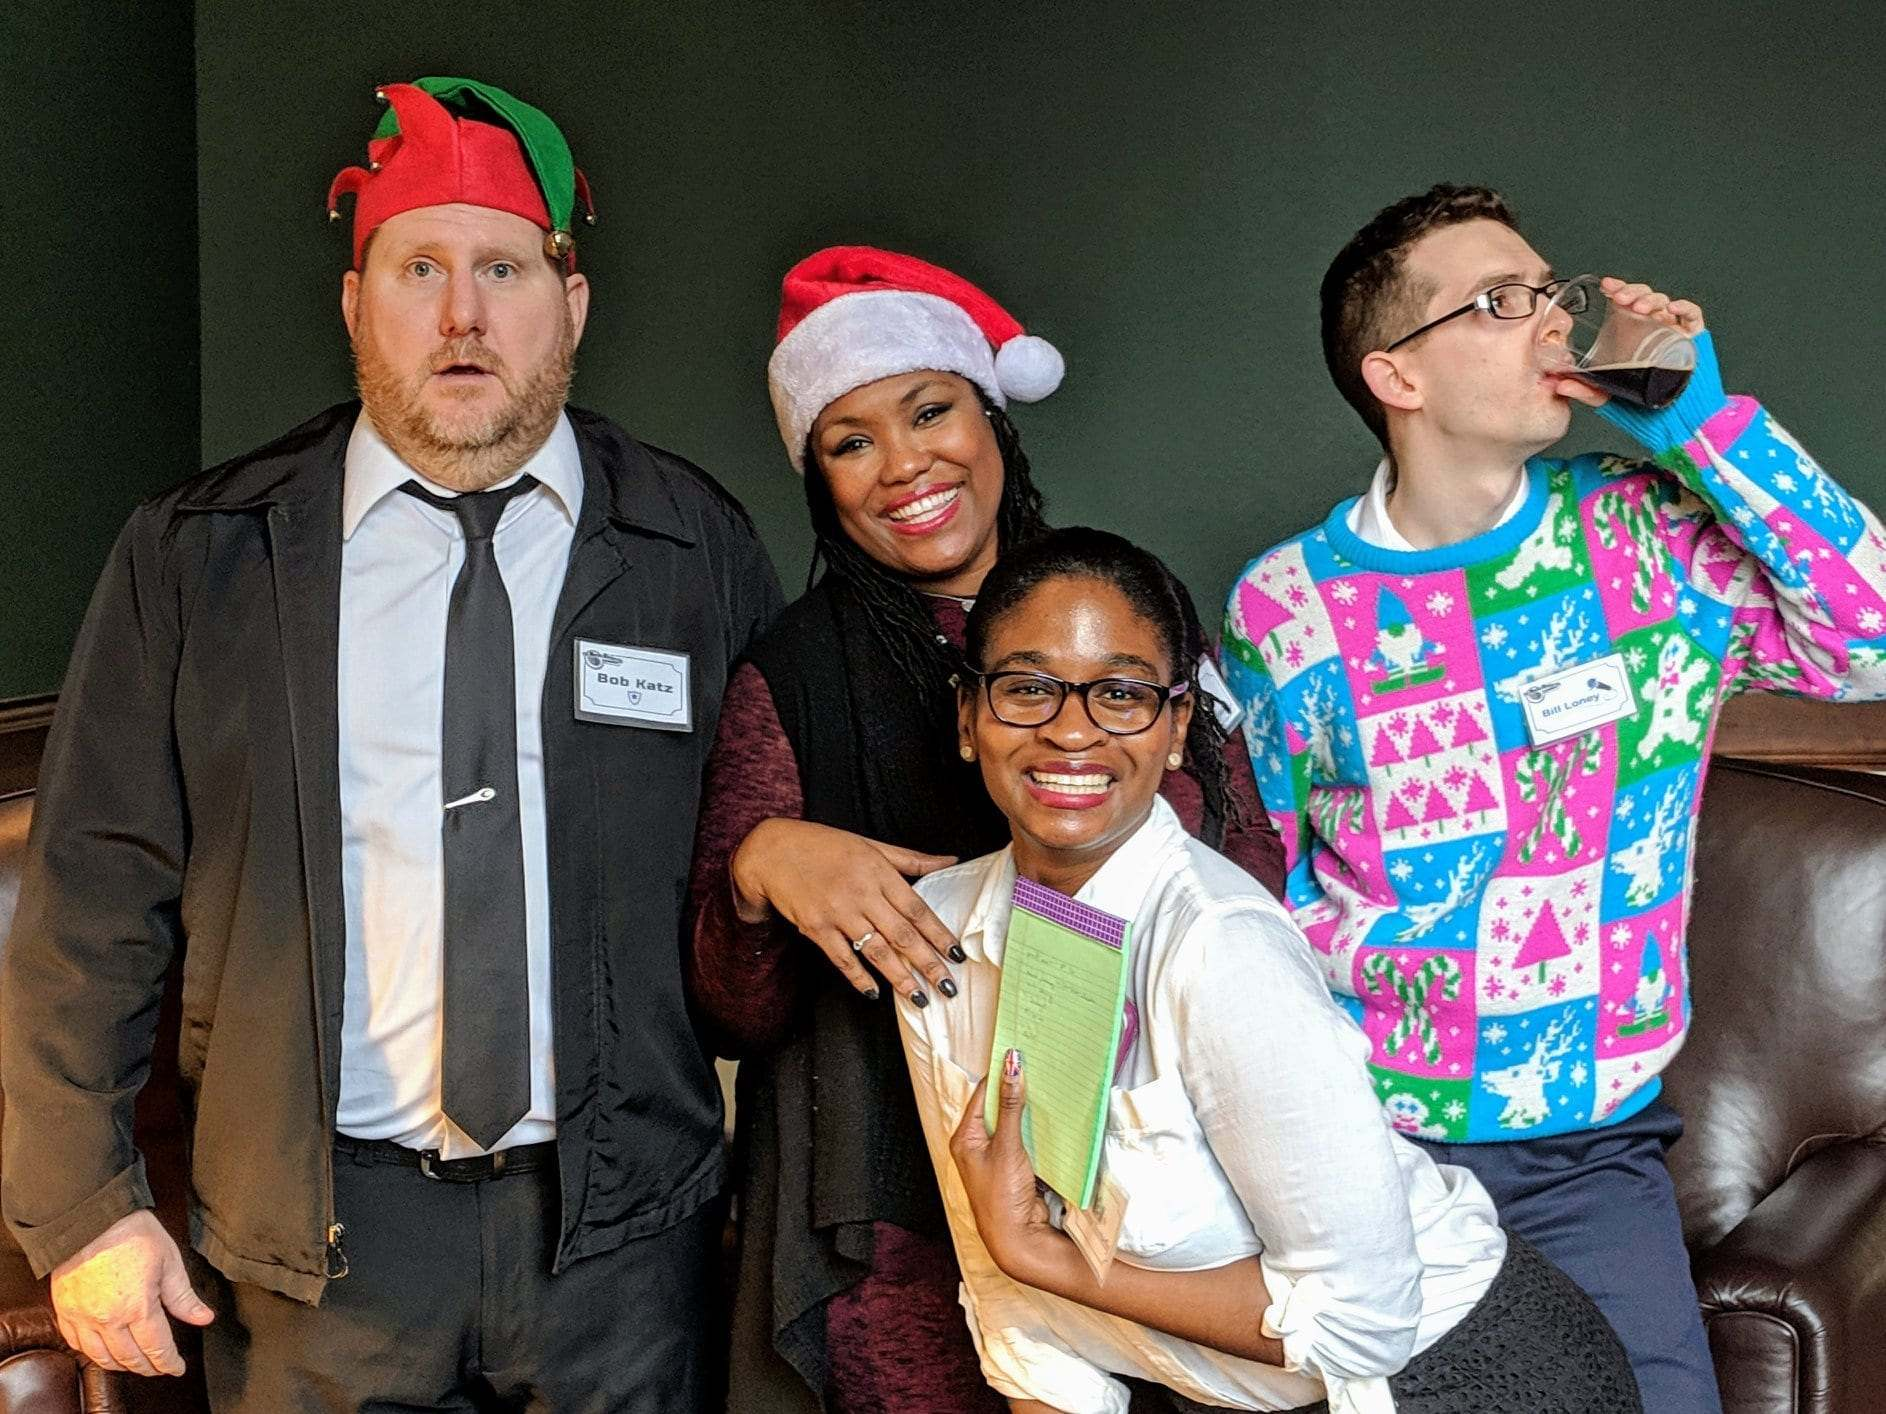 Murder Mystery Company clients dancing at their annual office Christmas party.